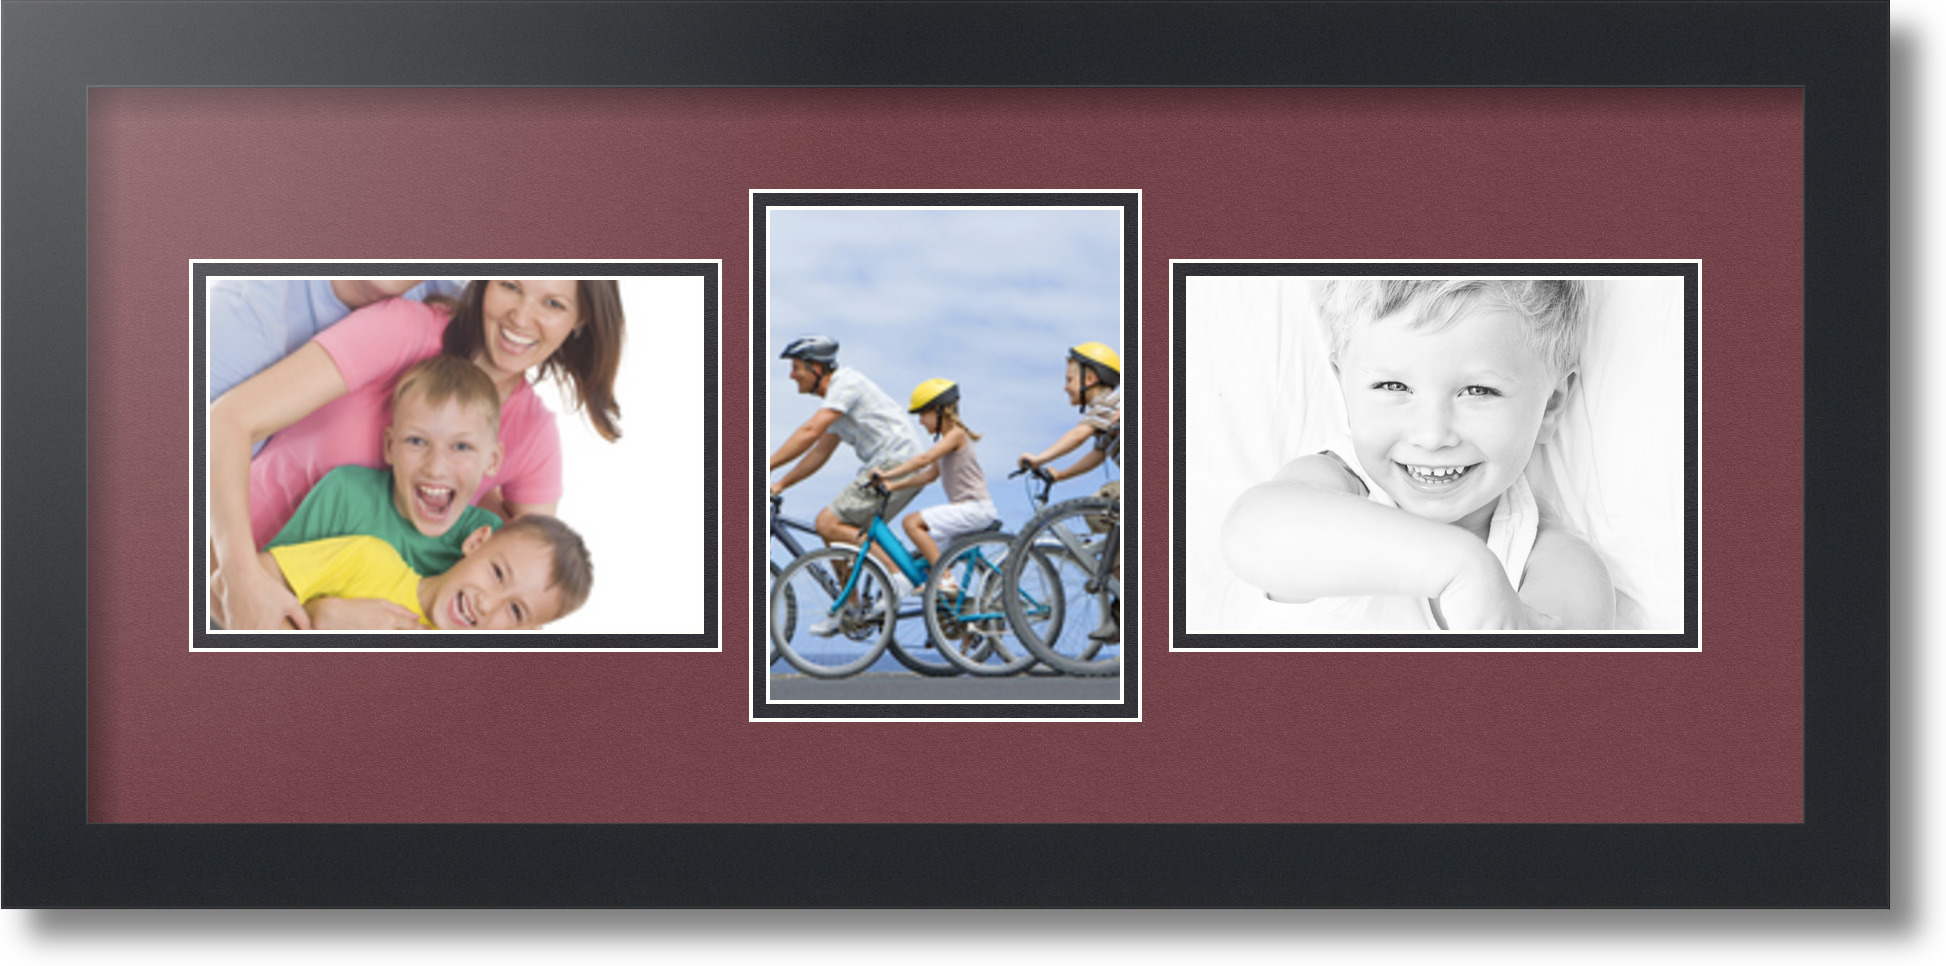 8x10 and 5x7 collage frame - Satin Black Collage Picture Frame With 3 5x7